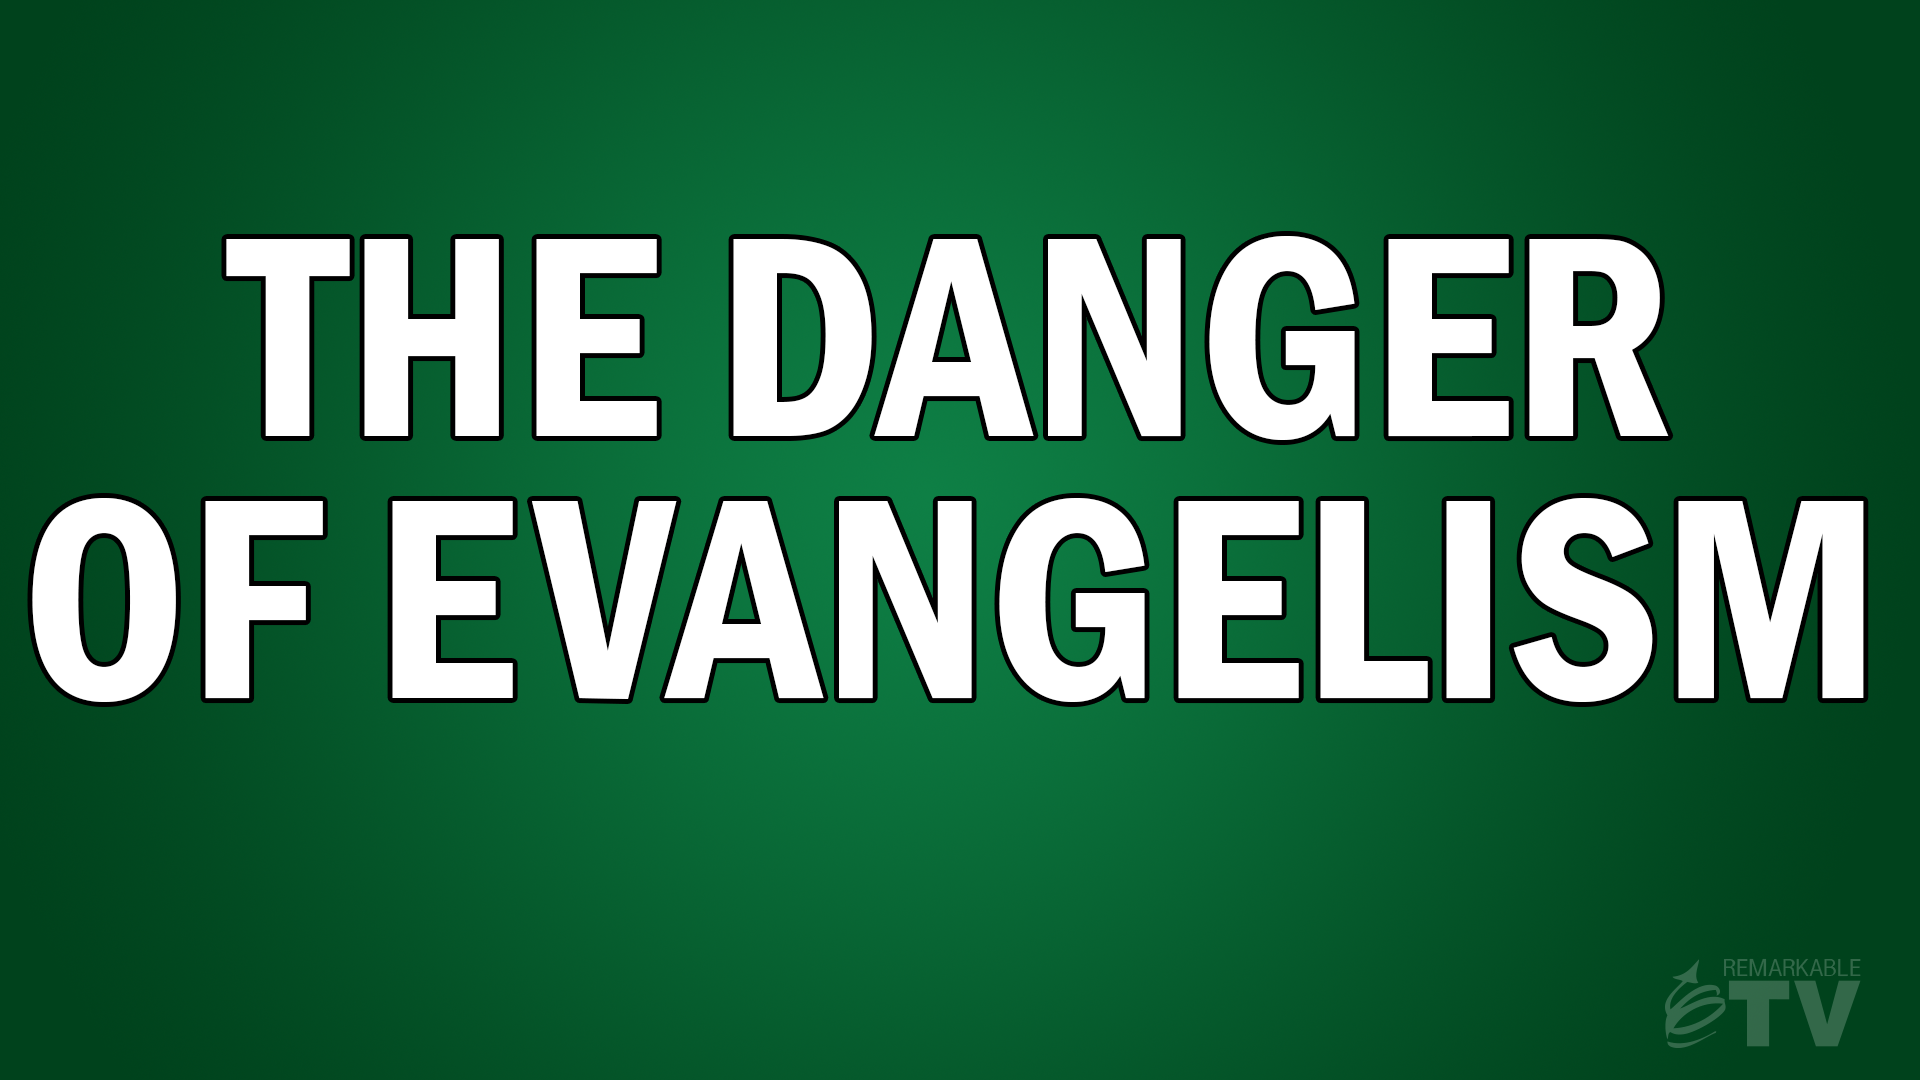 The Danger of Evangelism - Remarkable TV with Kevin Eikenberry